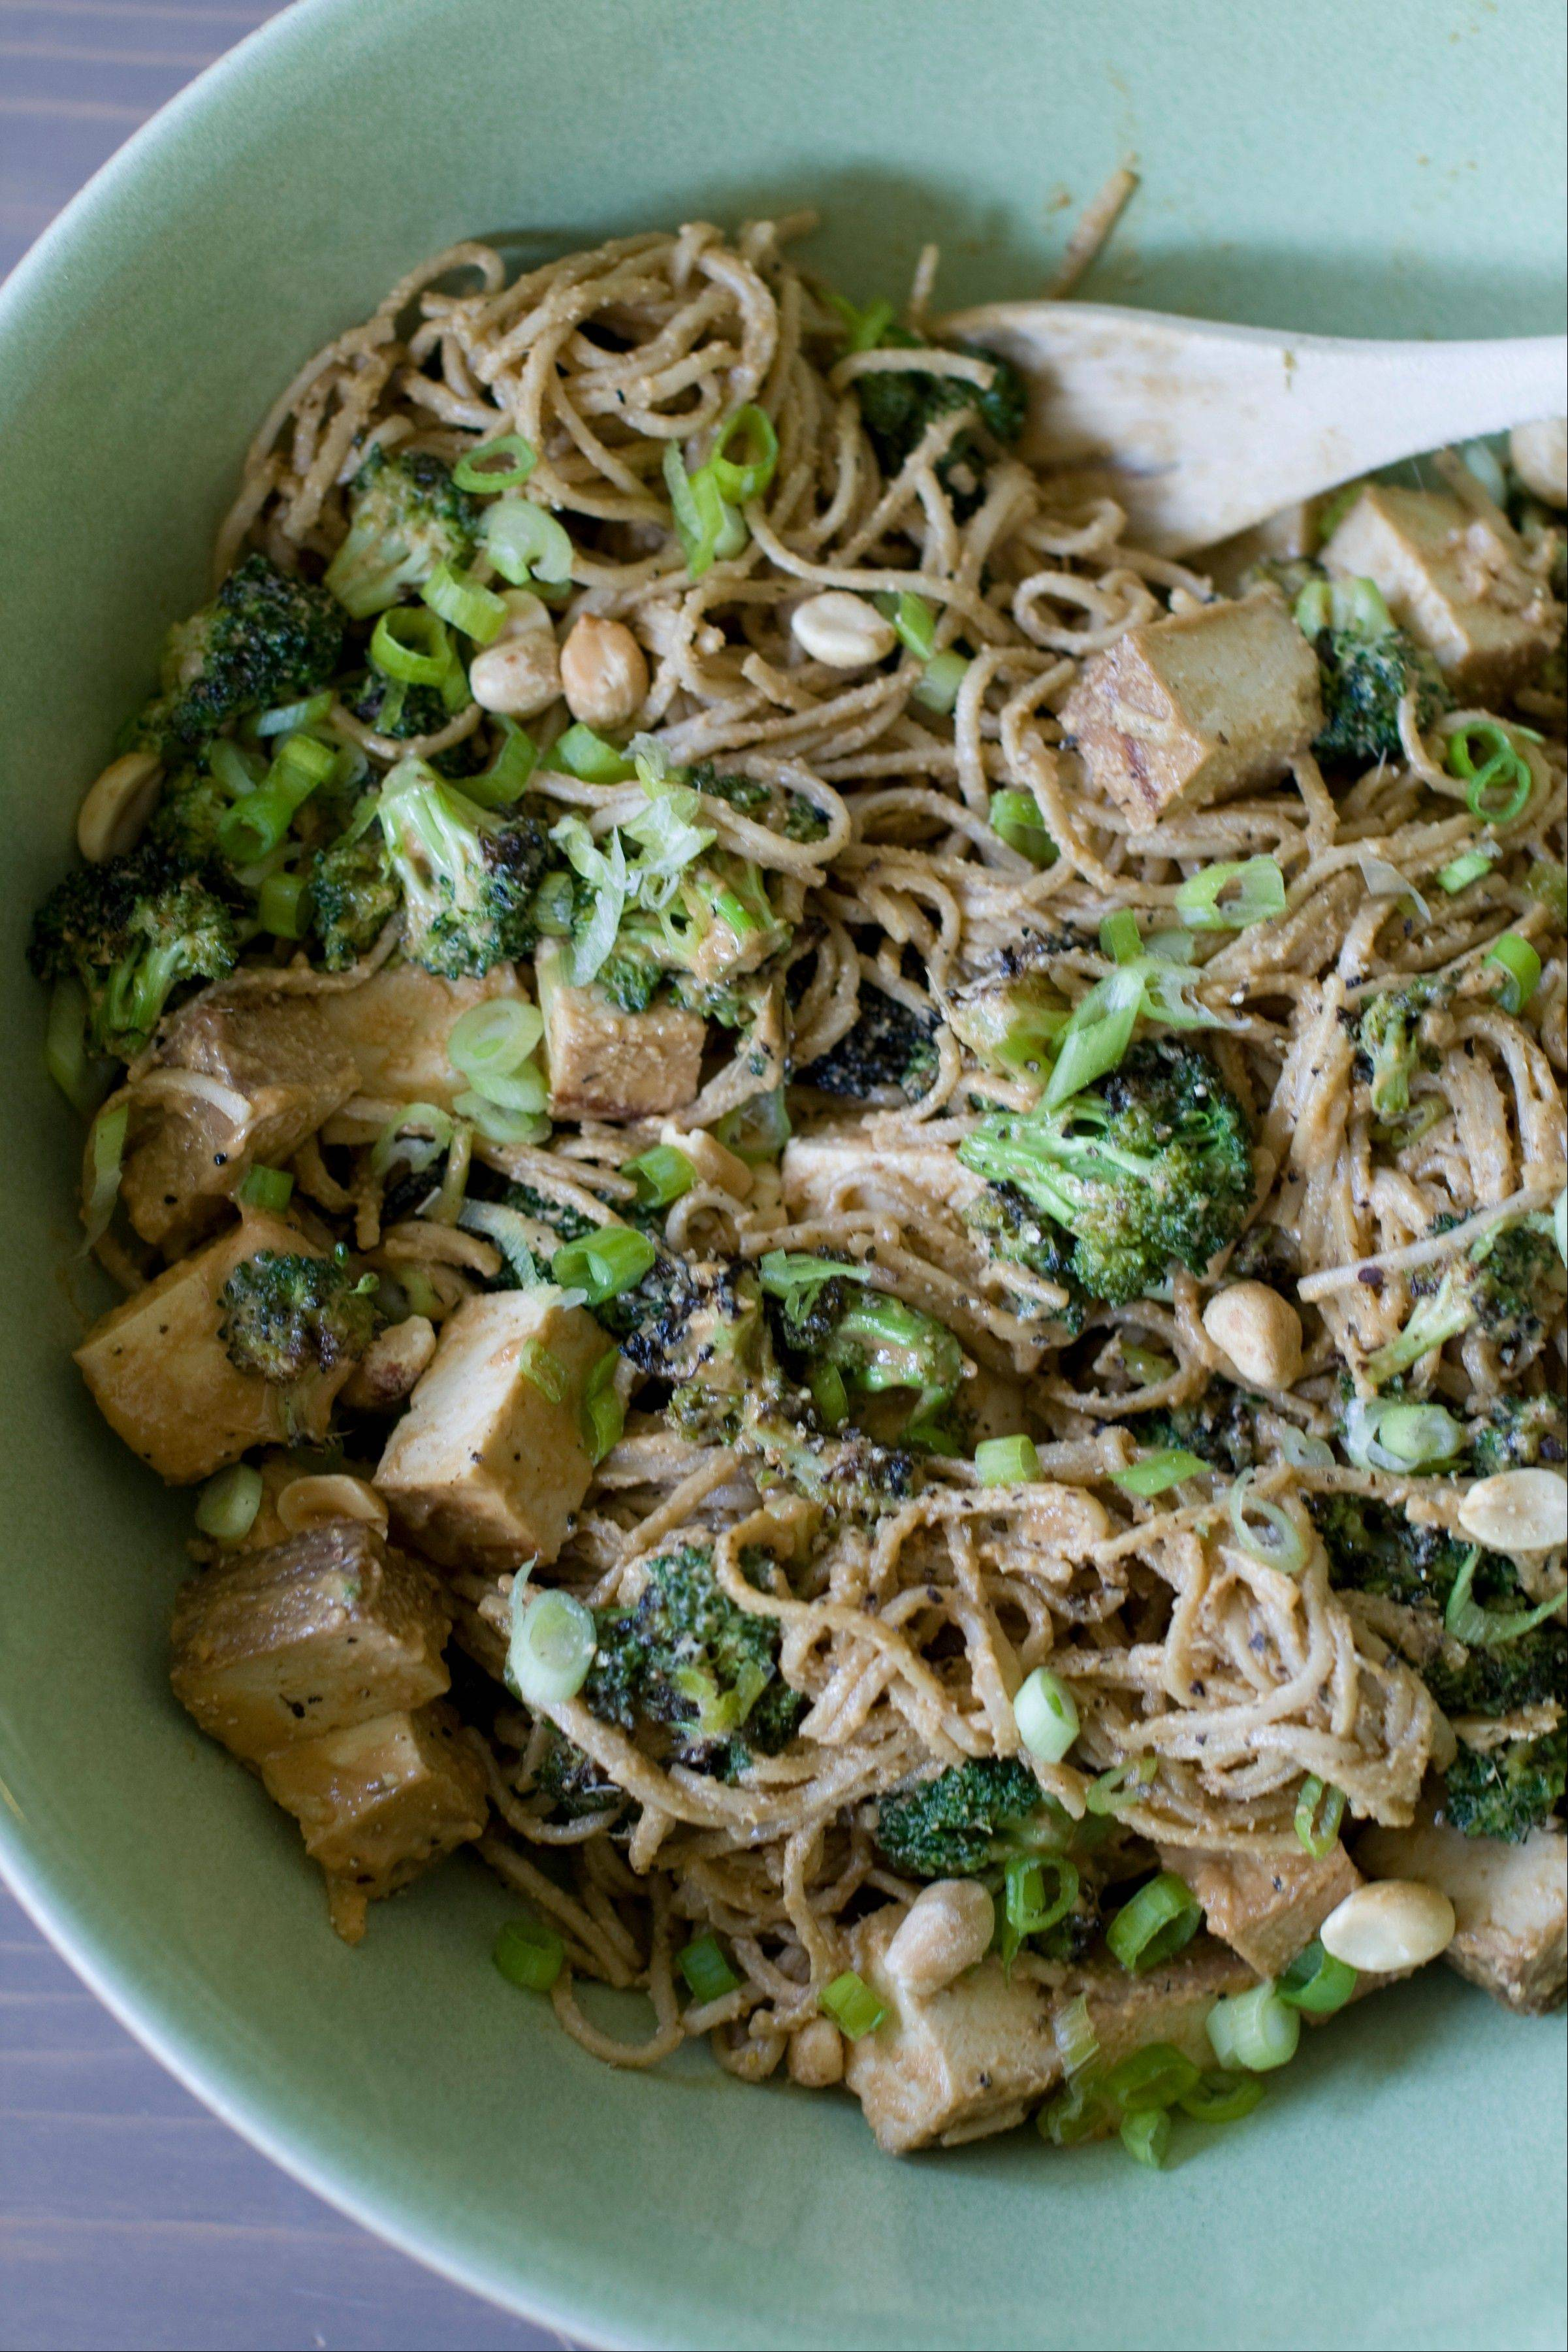 Spicy Peanut Noodle Salad With Tofu